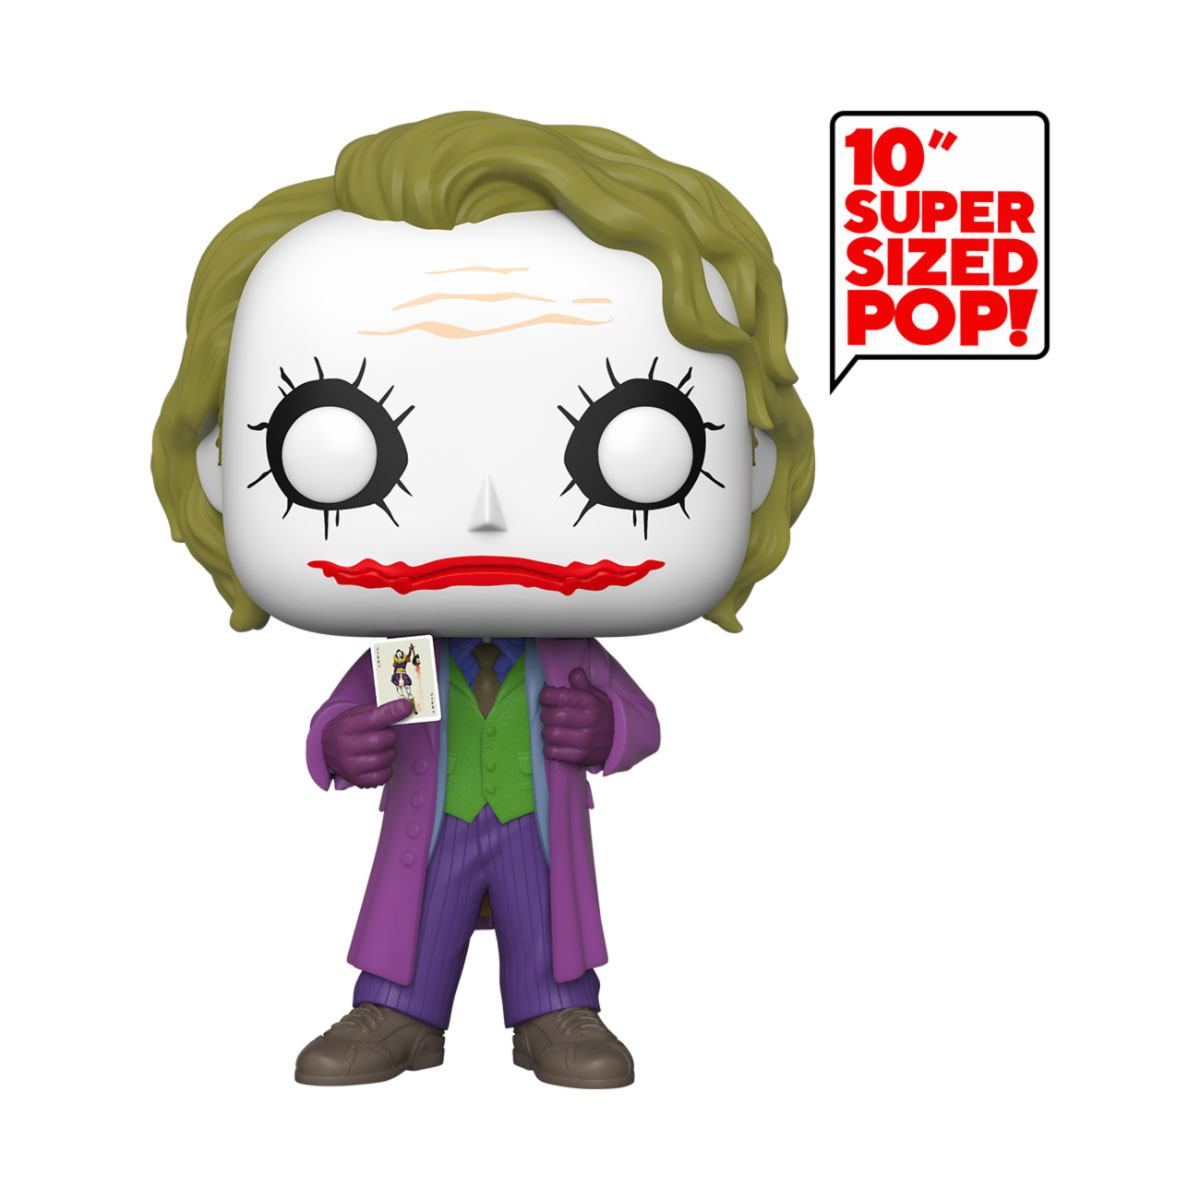 Funko POP: The Dark Knight - The Joker Supersized 25 cm